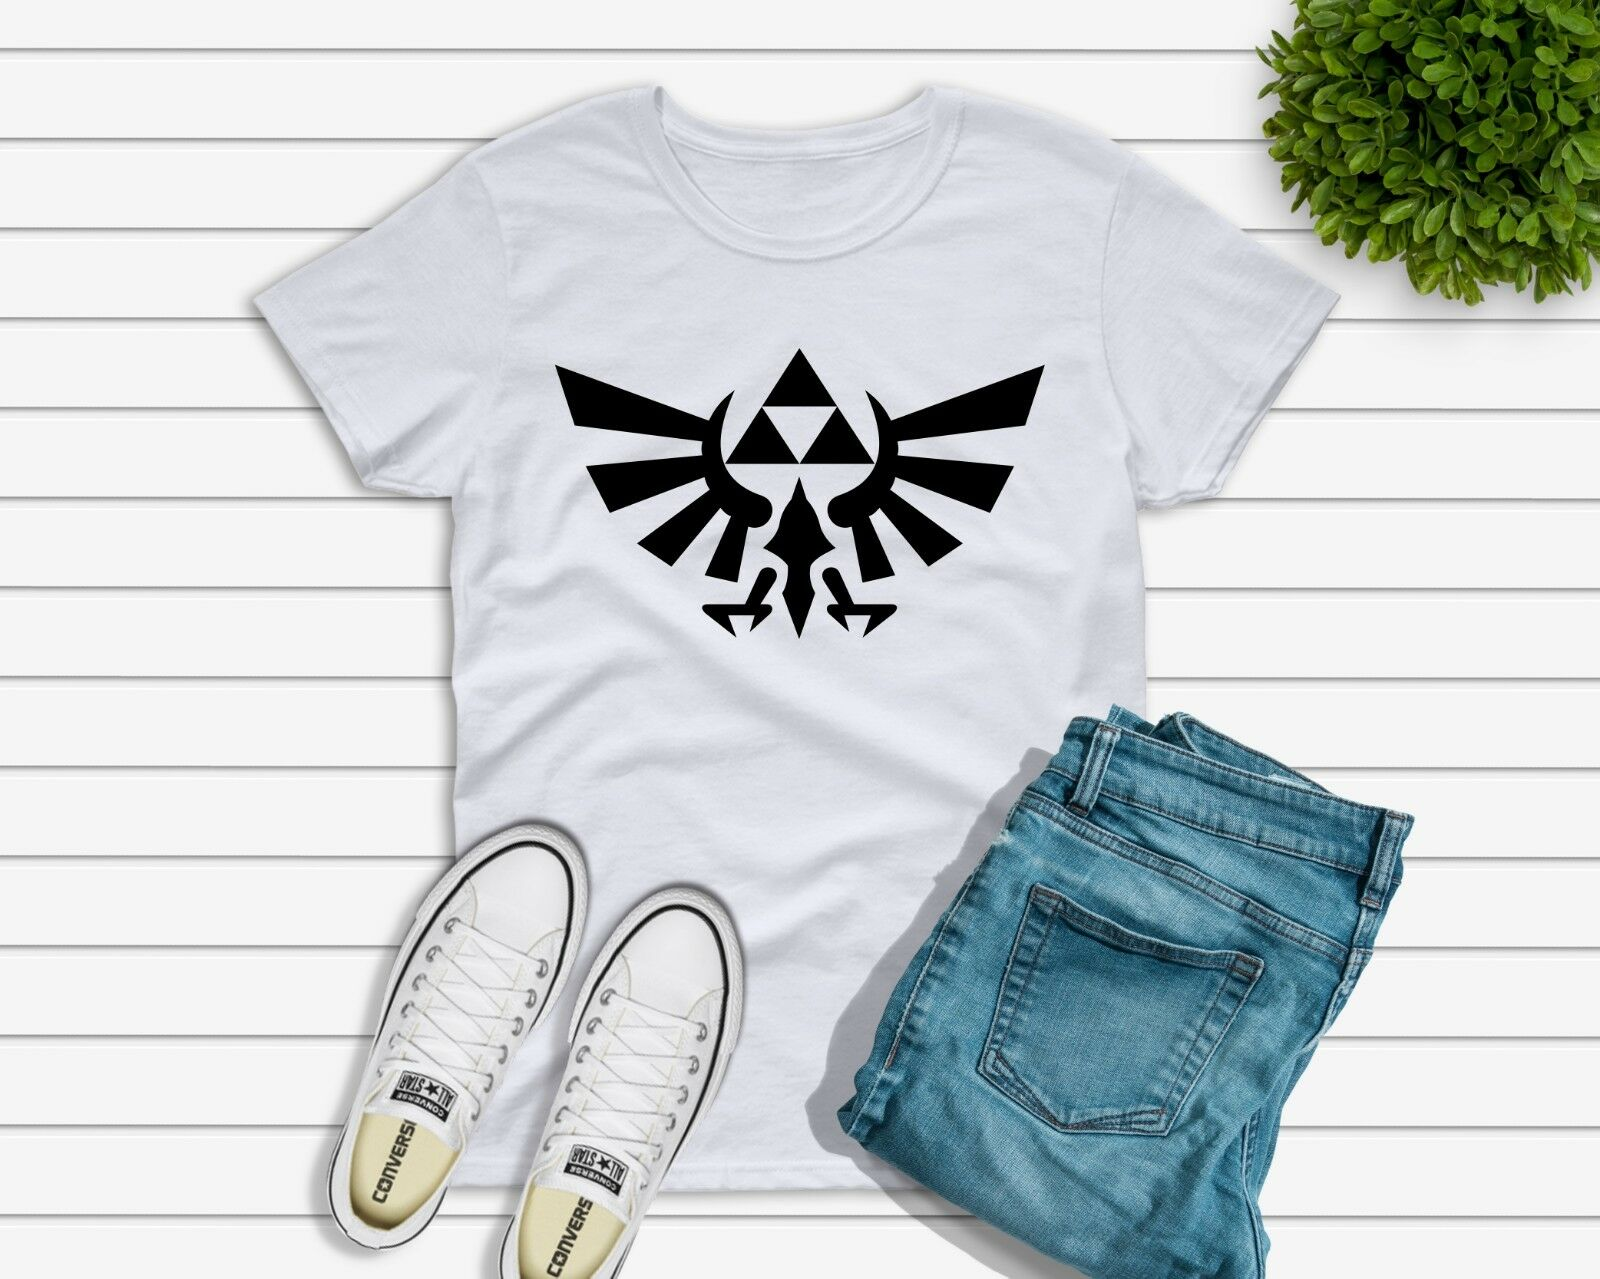 790181dedc6 Mens T Shirts Fashion 100% Cotton Short Sleeve O-Neck Tops Tee Shirts Design  Free Shipping Round Neck Summer New Men High Quality Casual Printing Tee  O-Neck ...